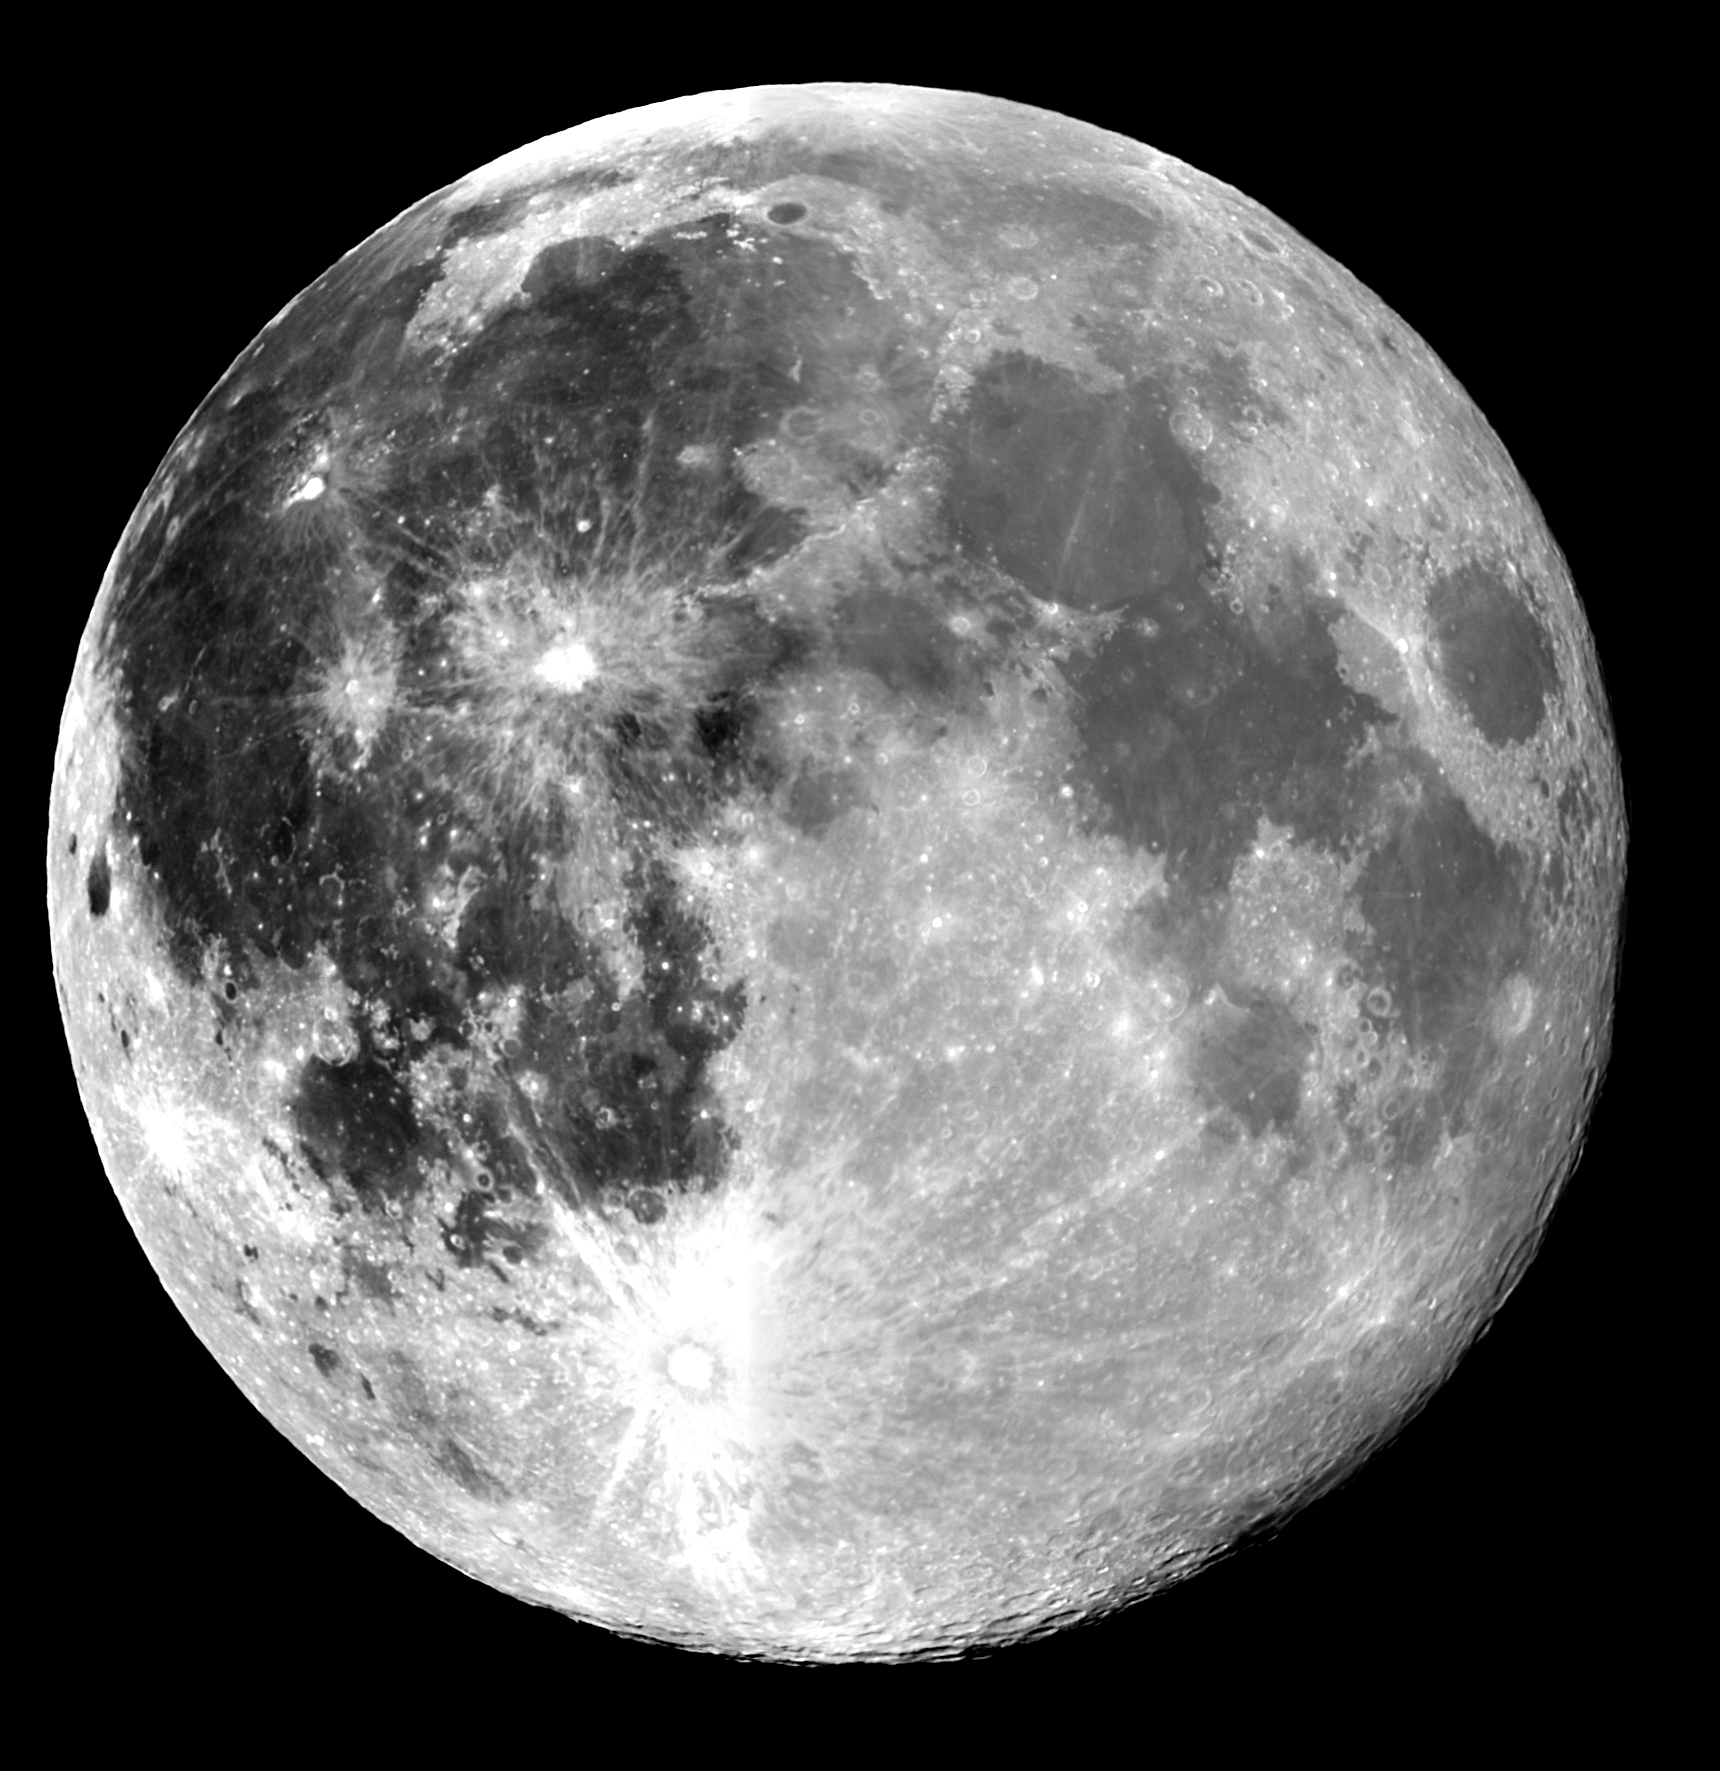 Full Moon: 14 Nov. 2016 Supermoon: The Largest Full Moon In More Than